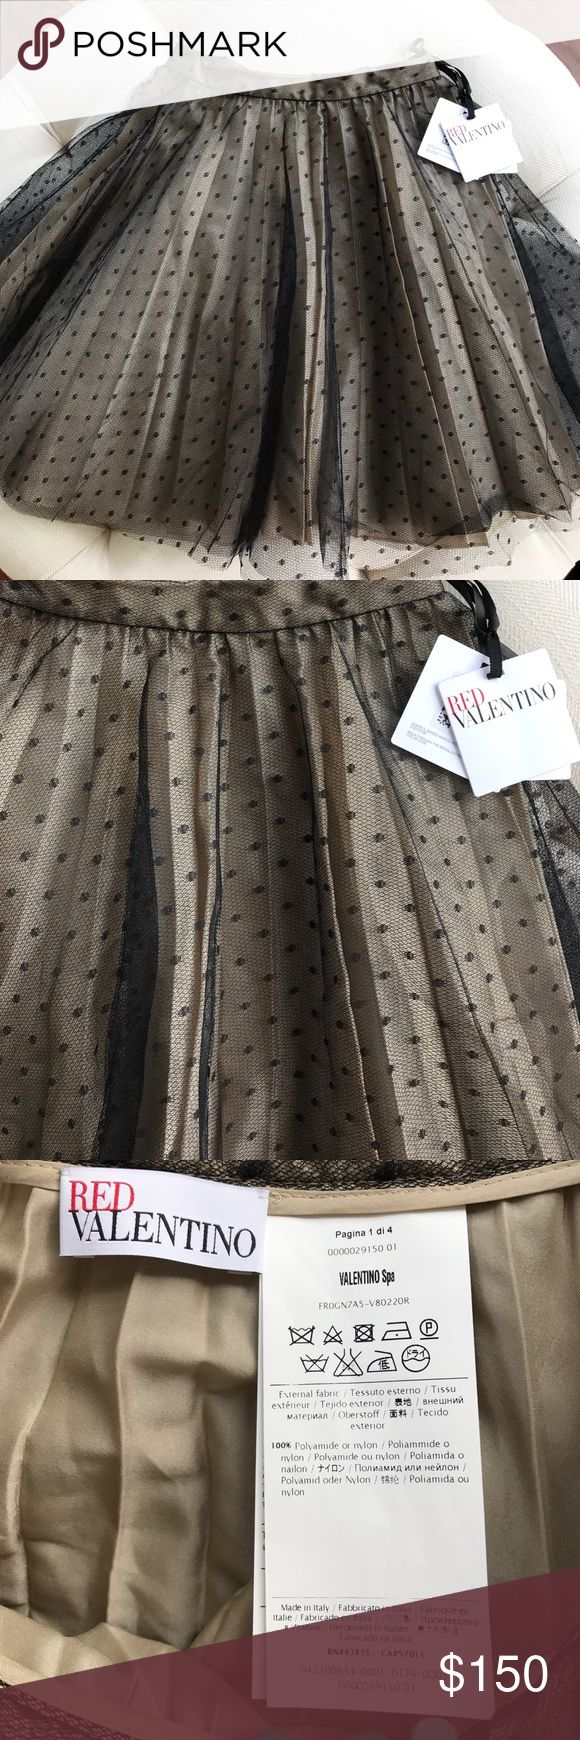 ❤️NWT Red Valentino Point D Espirit Skirt Size 2❤️ Product details  Sits at the natural waist. A-line silhouette. Straight hem. Made in Italy. Universal Product Identifiers BrandRed Valentino❤️ This skirt is still being sold in store and online at Neiman Marcus.❤️❤️ The skirt is very sex and the city! 💋 RED Valentino Skirts